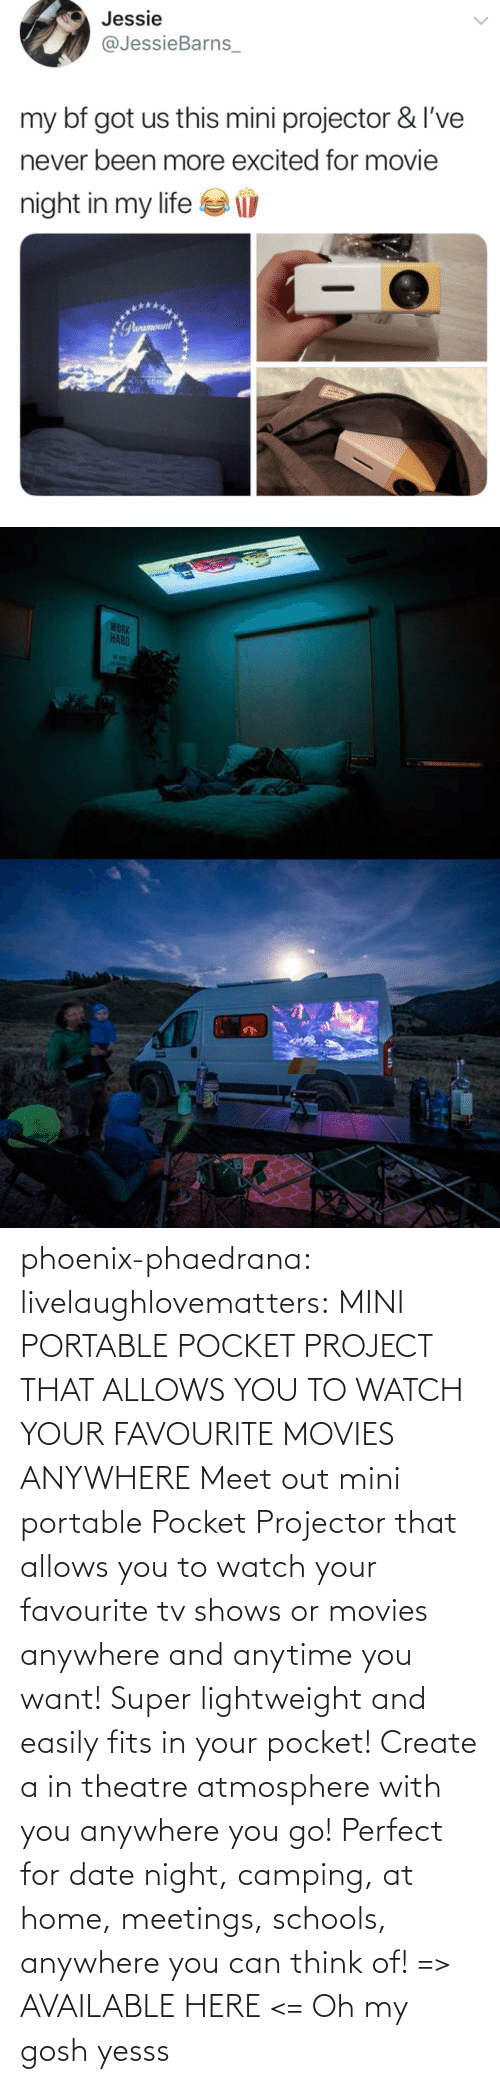 create: phoenix-phaedrana: livelaughlovematters:  MINI PORTABLE POCKET PROJECT THAT ALLOWS YOU TO WATCH YOUR FAVOURITE MOVIES ANYWHERE Meet out mini portable Pocket Projector that allows you to watch your favourite tv shows or movies anywhere and anytime you want! Super lightweight and easily fits in your pocket! Create a in theatre atmosphere with you anywhere you go! Perfect for date night, camping, at home, meetings, schools, anywhere you can think of! => AVAILABLE HERE <=  Oh my gosh yesss